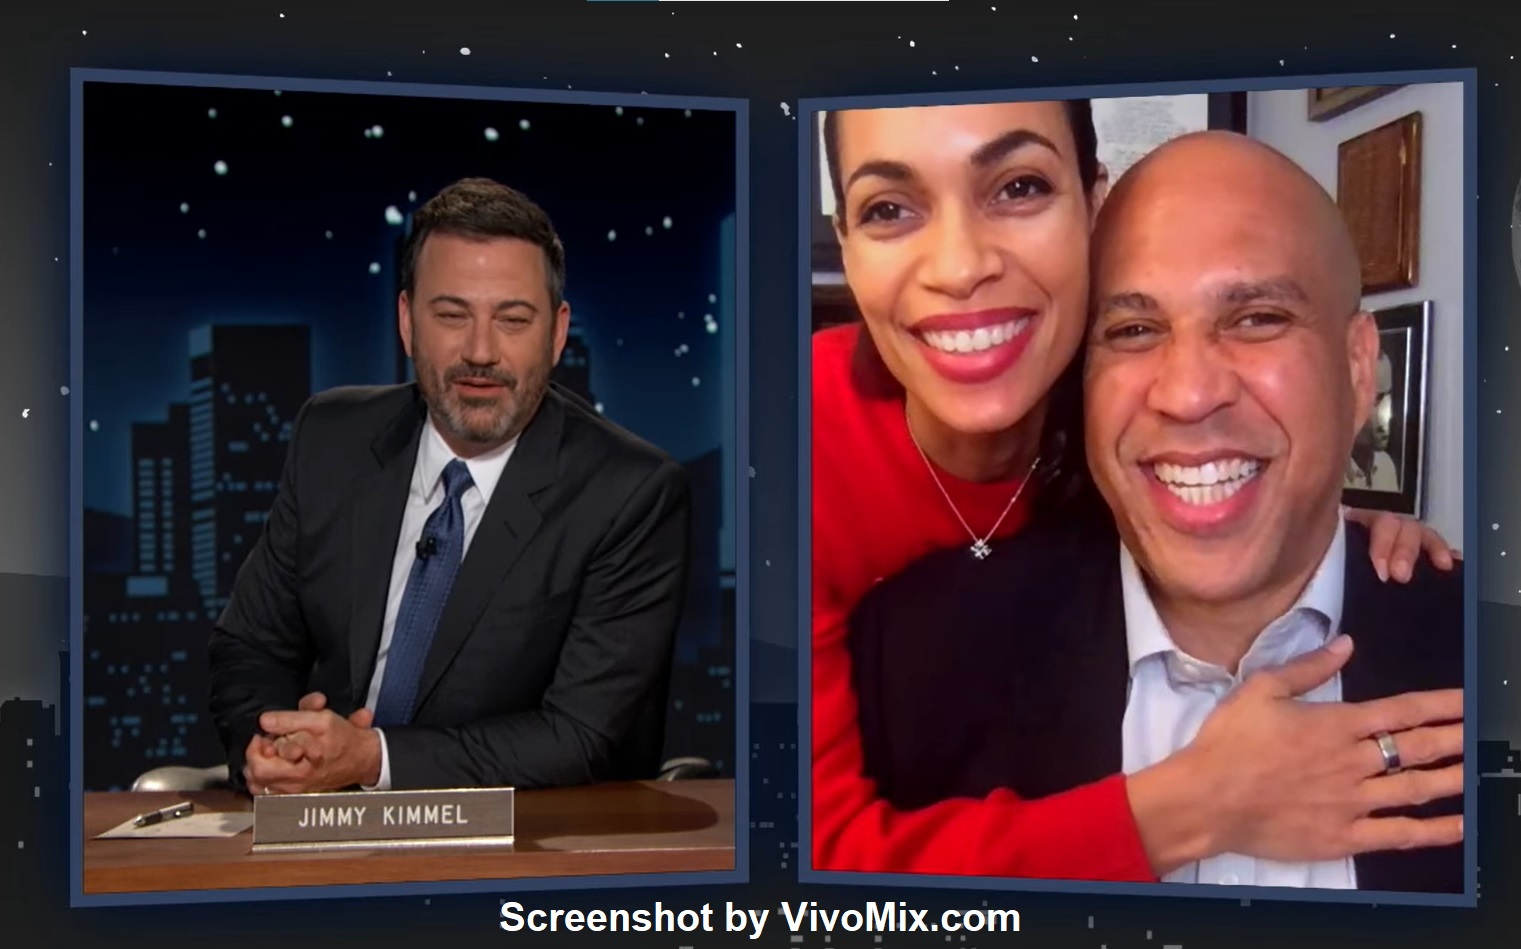 Rosario Dawson Sweetly Crash Boyfriend Cory Booker's Interview With Jimmy Kimmel